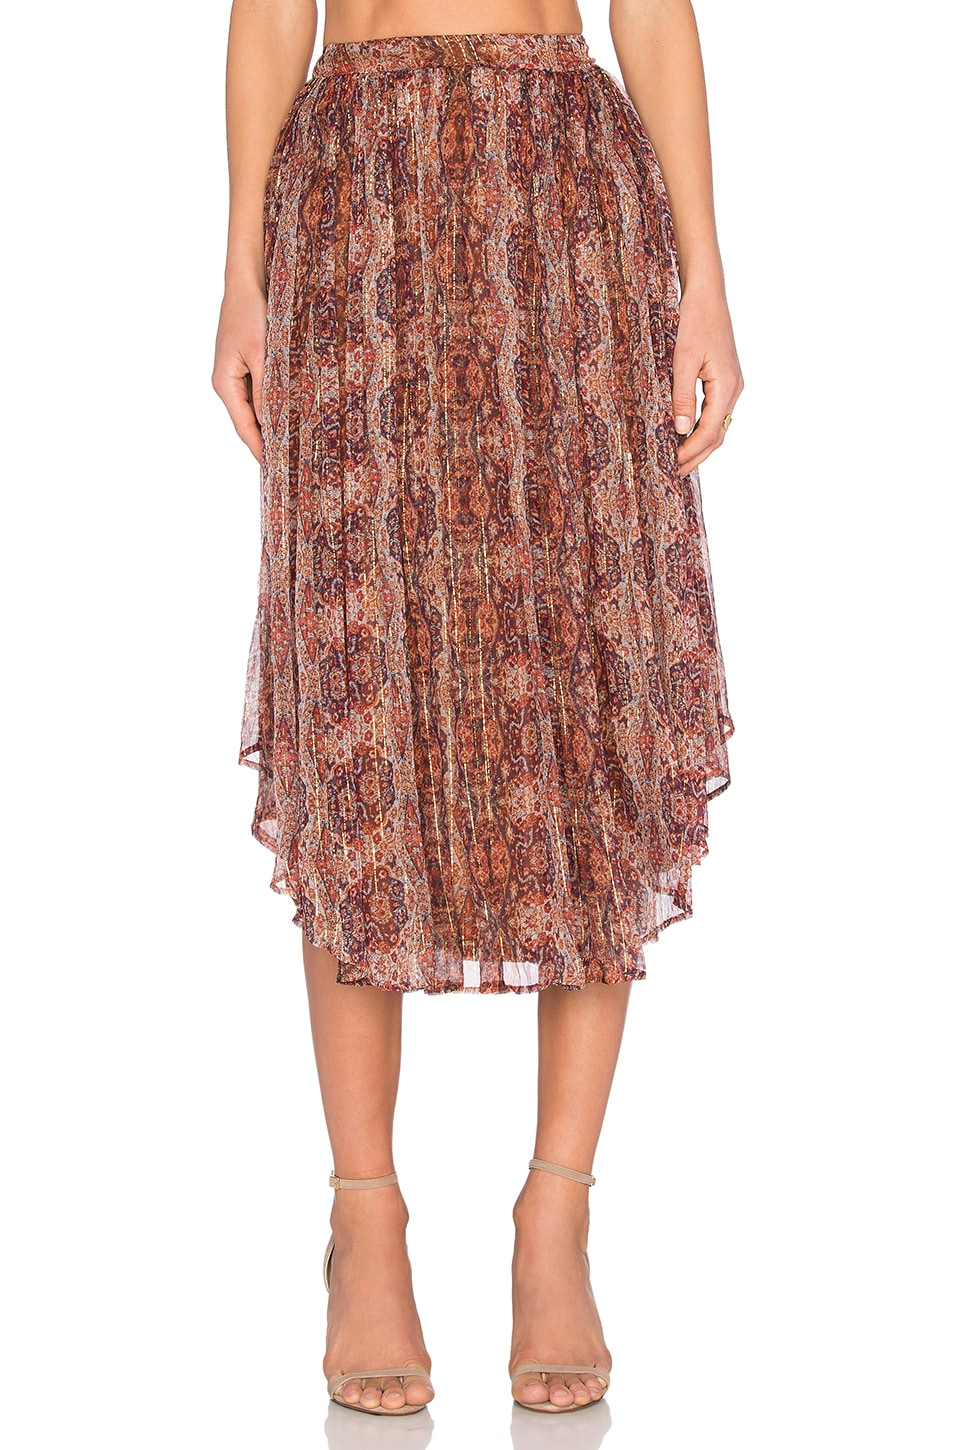 Bardot Moroccan Tile Skirt in Tapestry Print